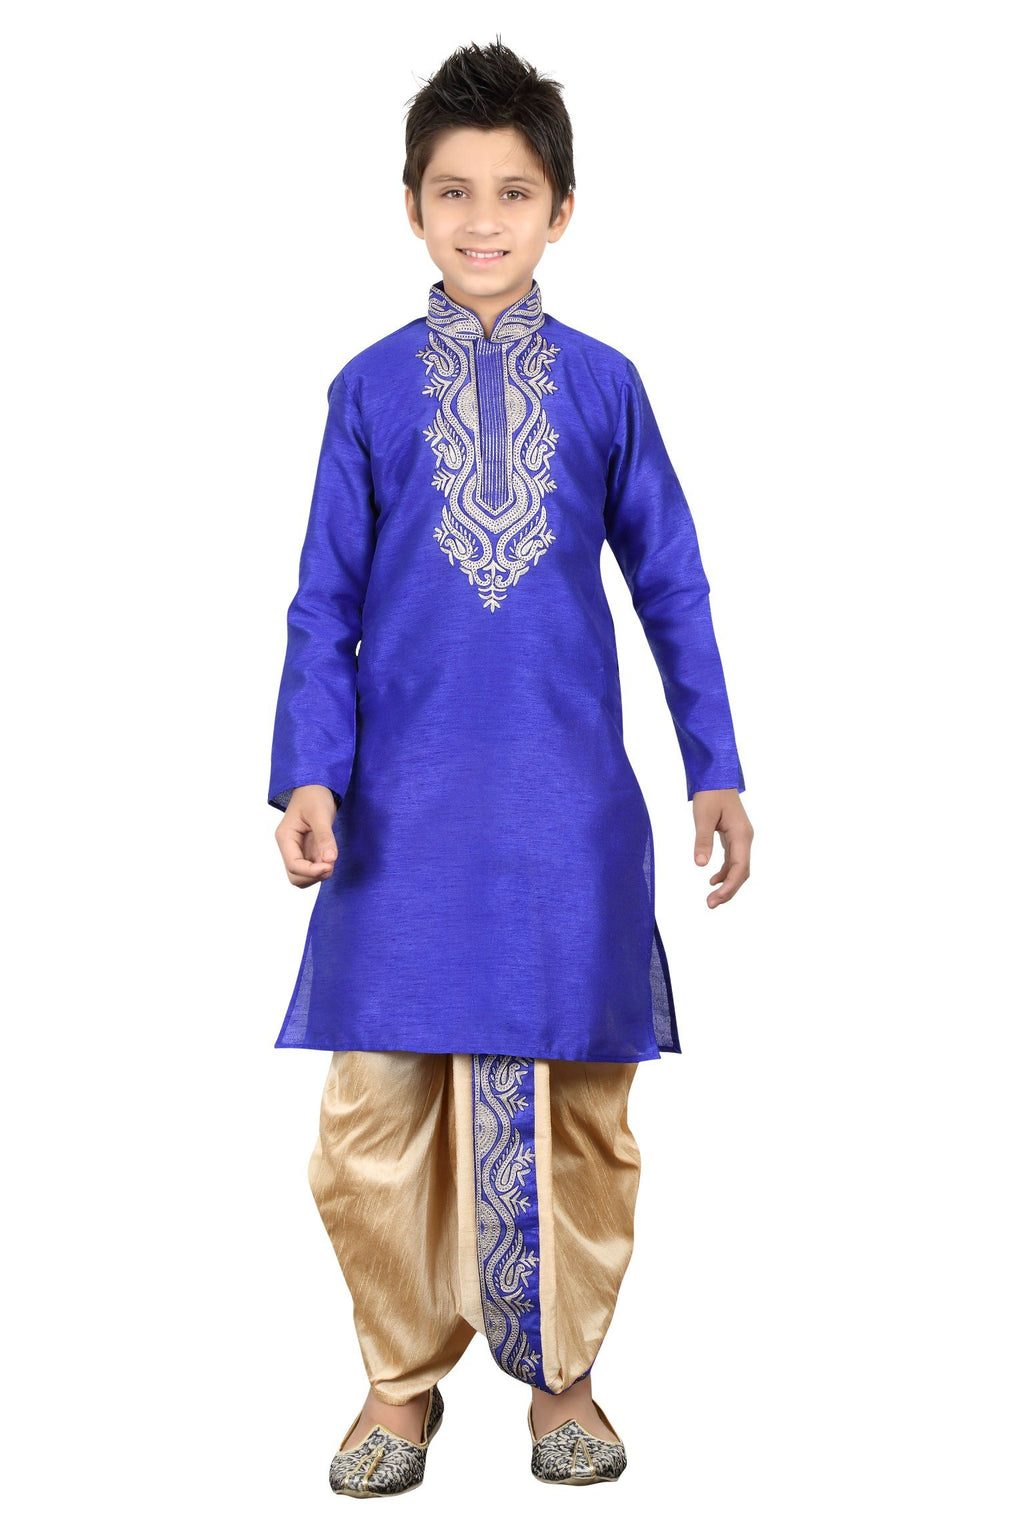 Party Wear Boys Kurta Pajama in Royal Blue Color  - KB000262